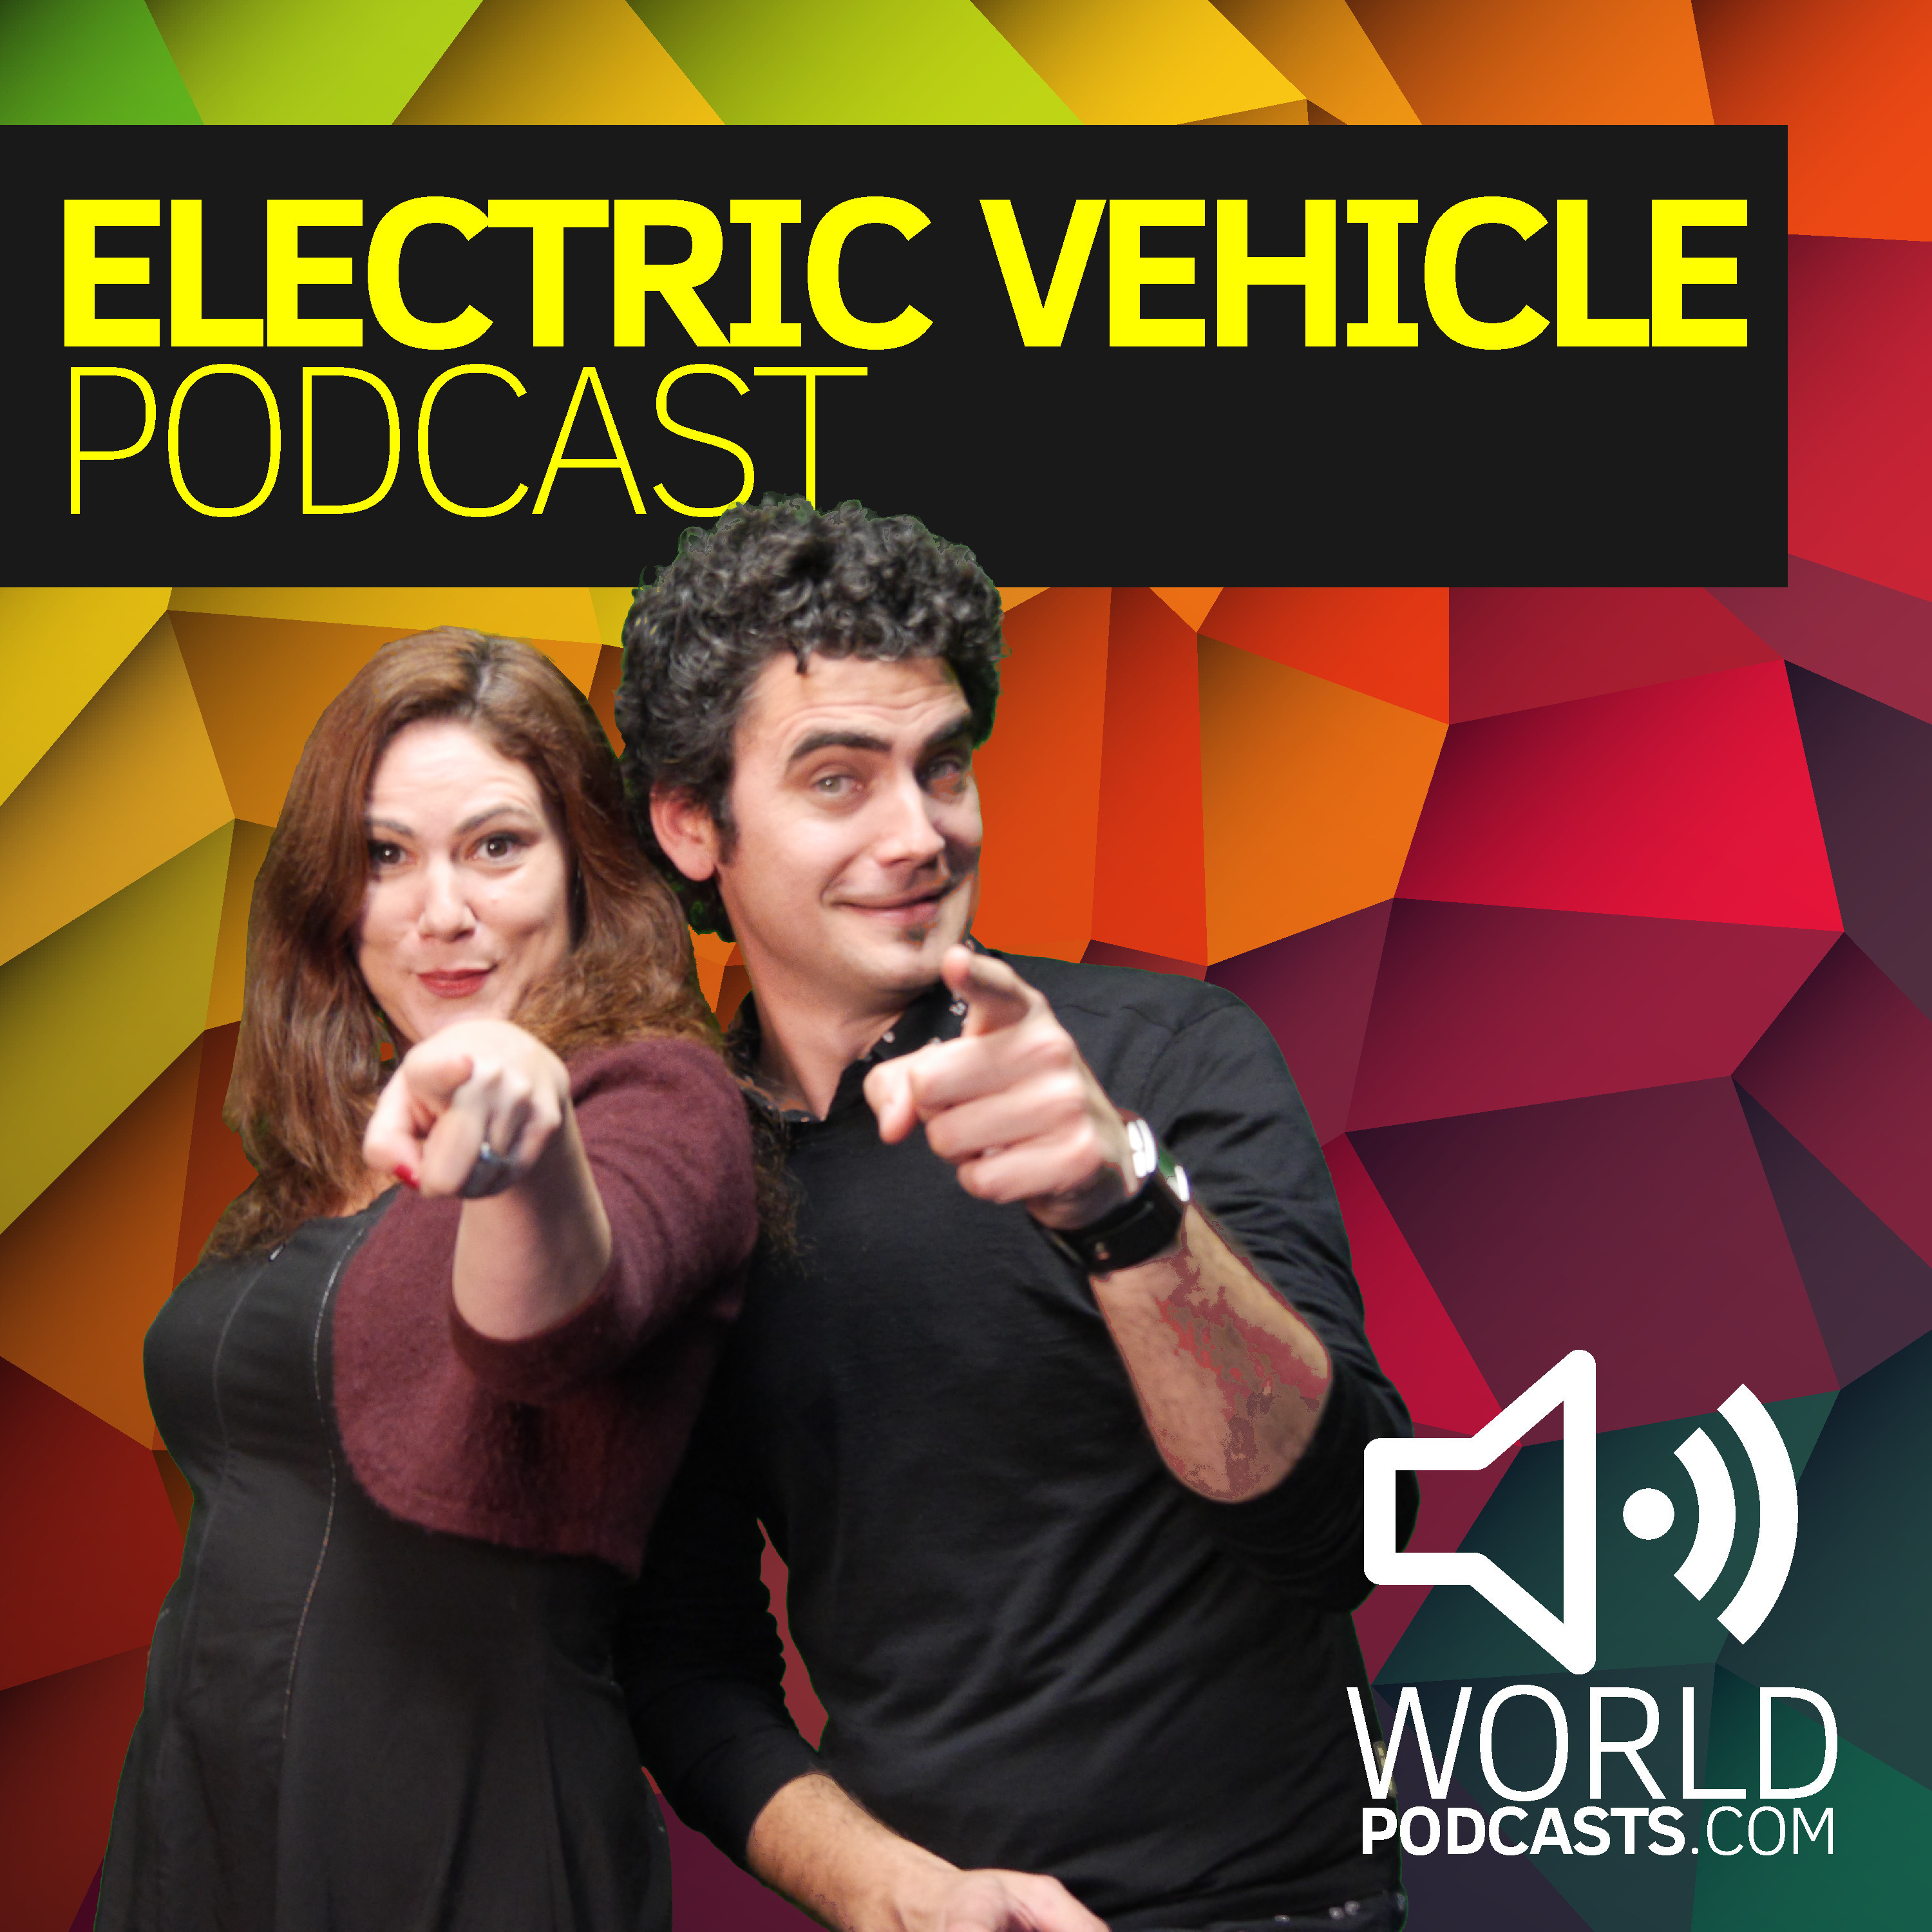 EV Podcast: Team Taupo Electric